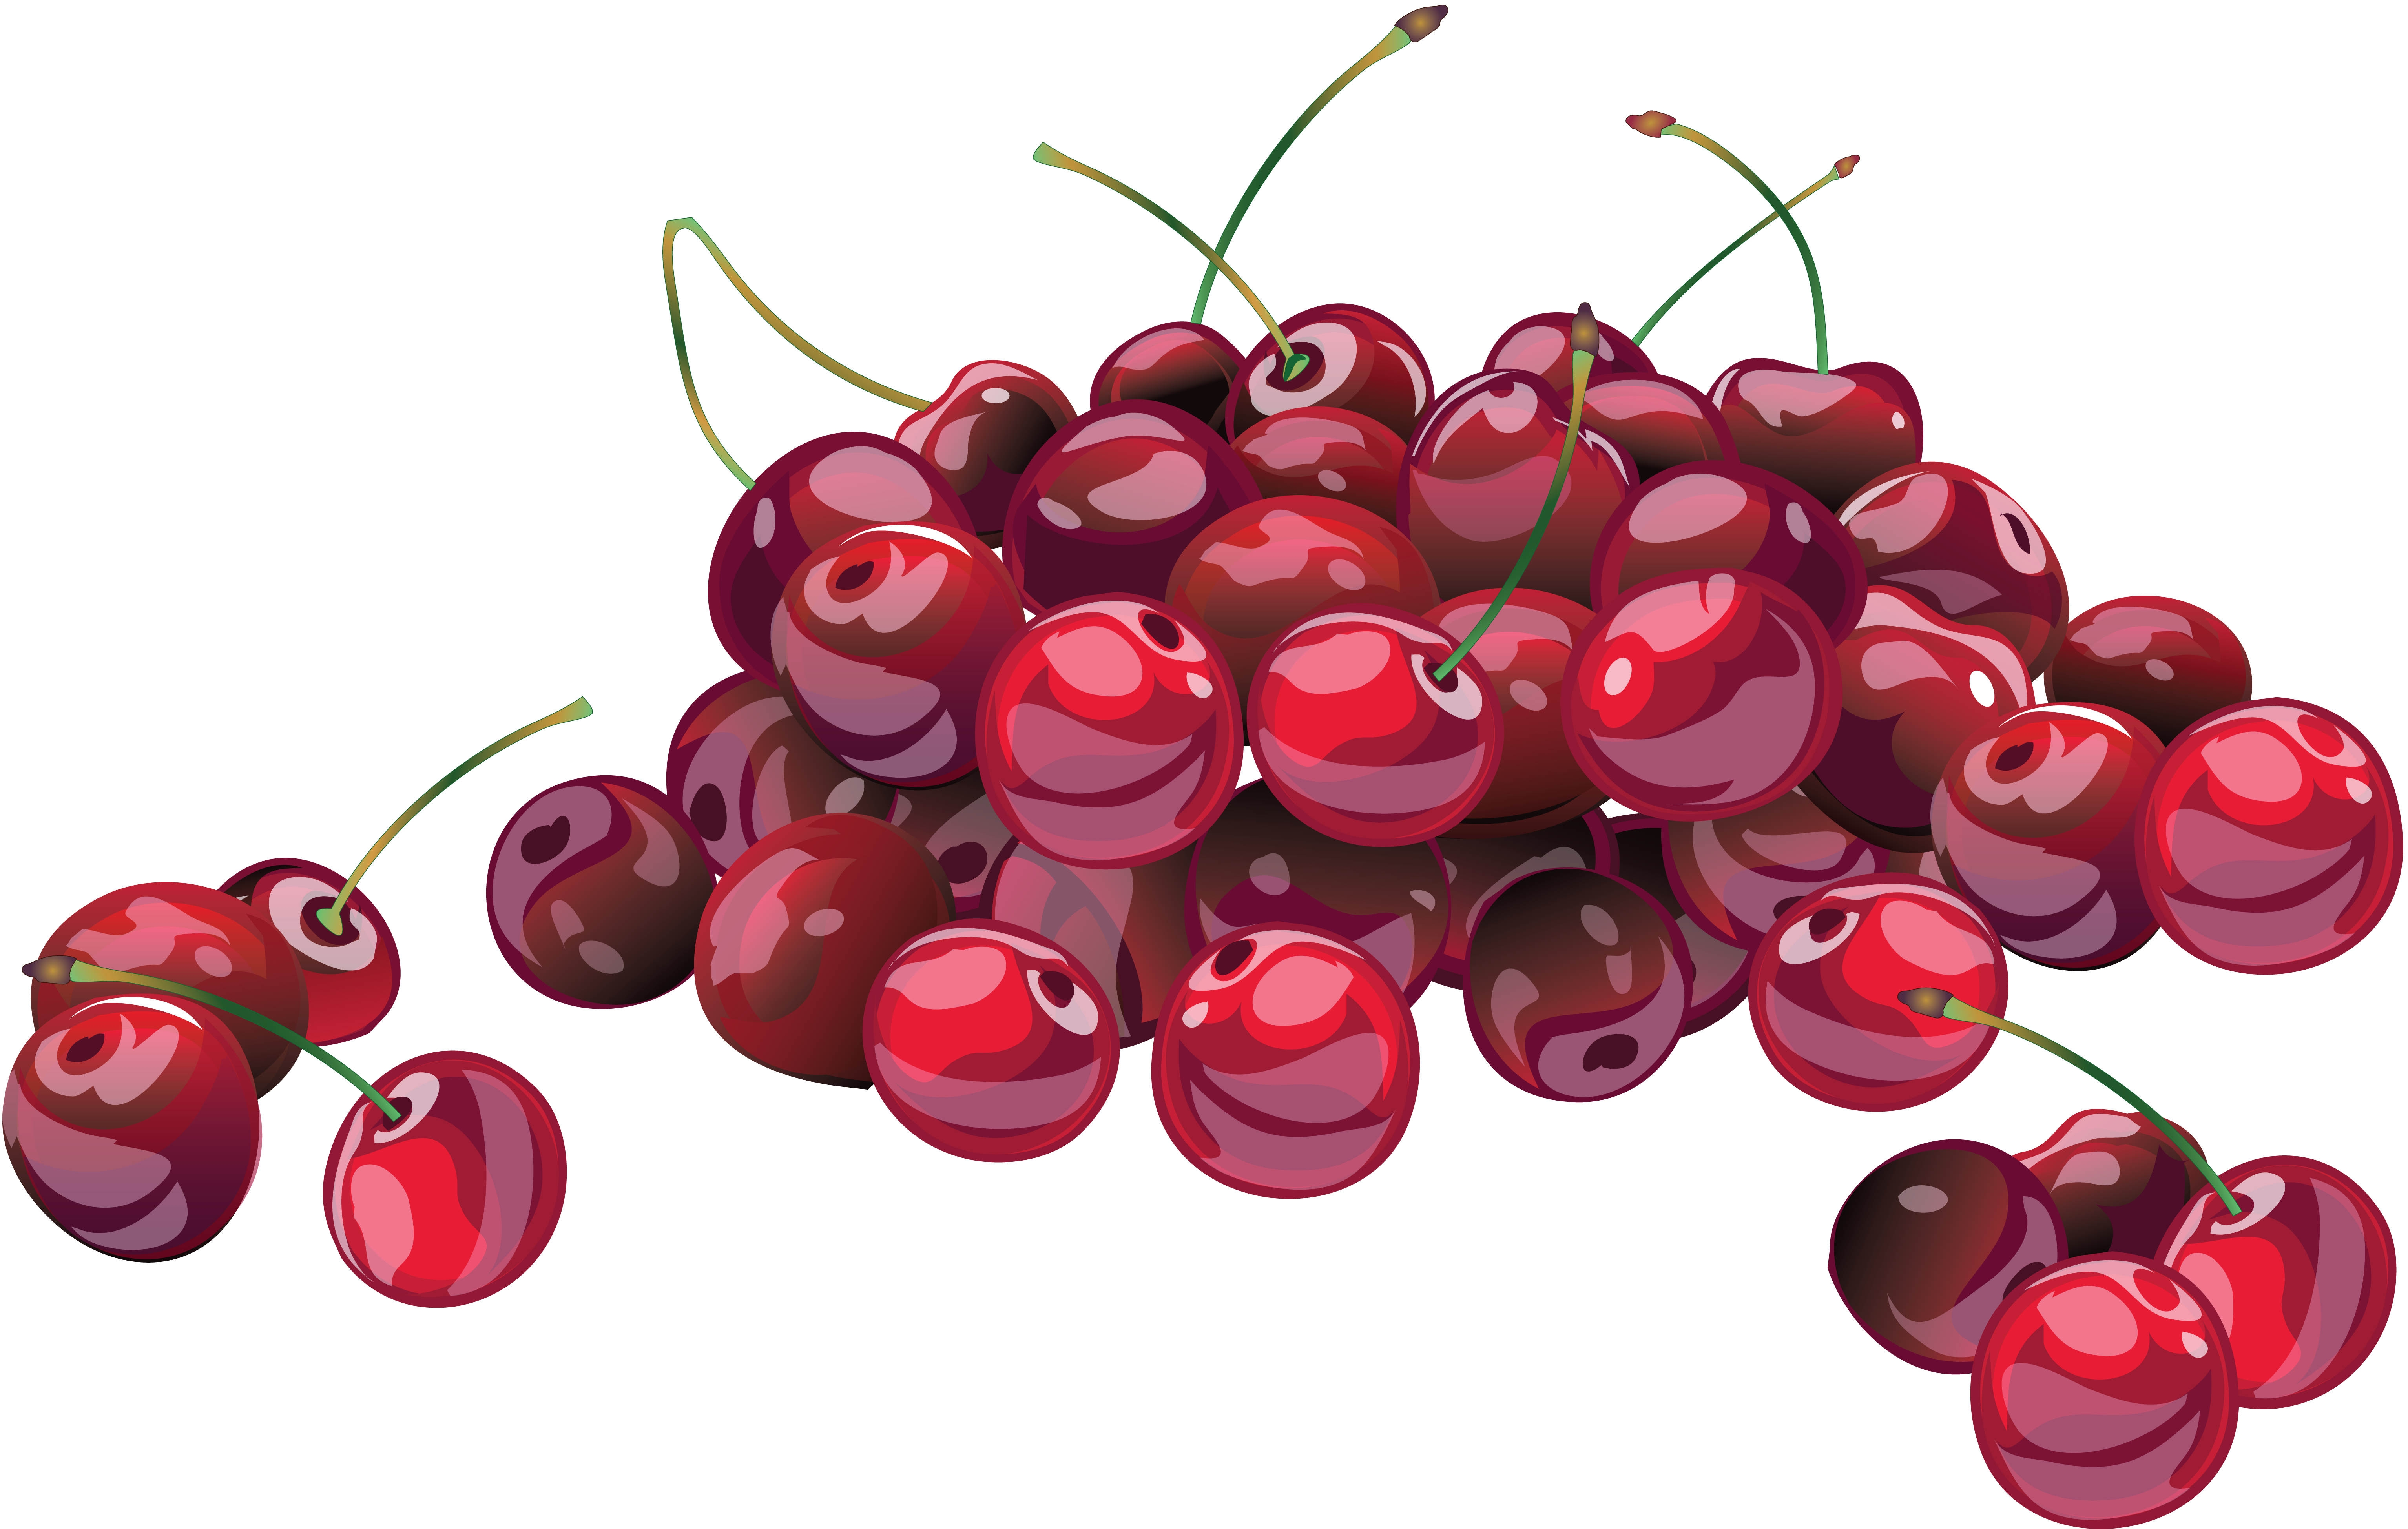 6136x3897 Wallpaper Cherry, Berry, Drawing, Branch, Many Hd, Picture, Image